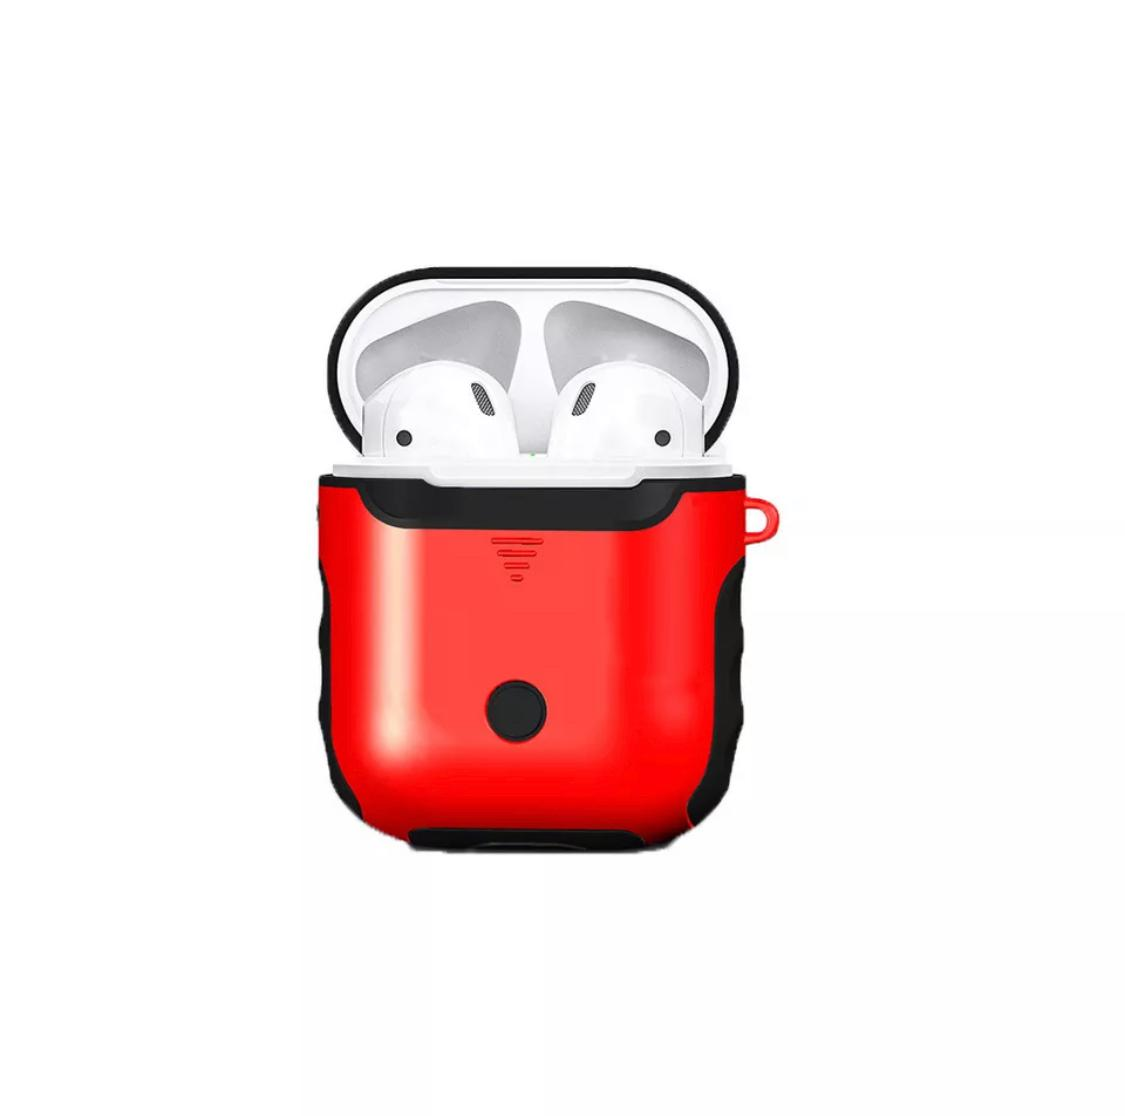 Sleeve Wrap Protective Skin Case Cover TPU PC Earphones Pouch For Apple AirPods